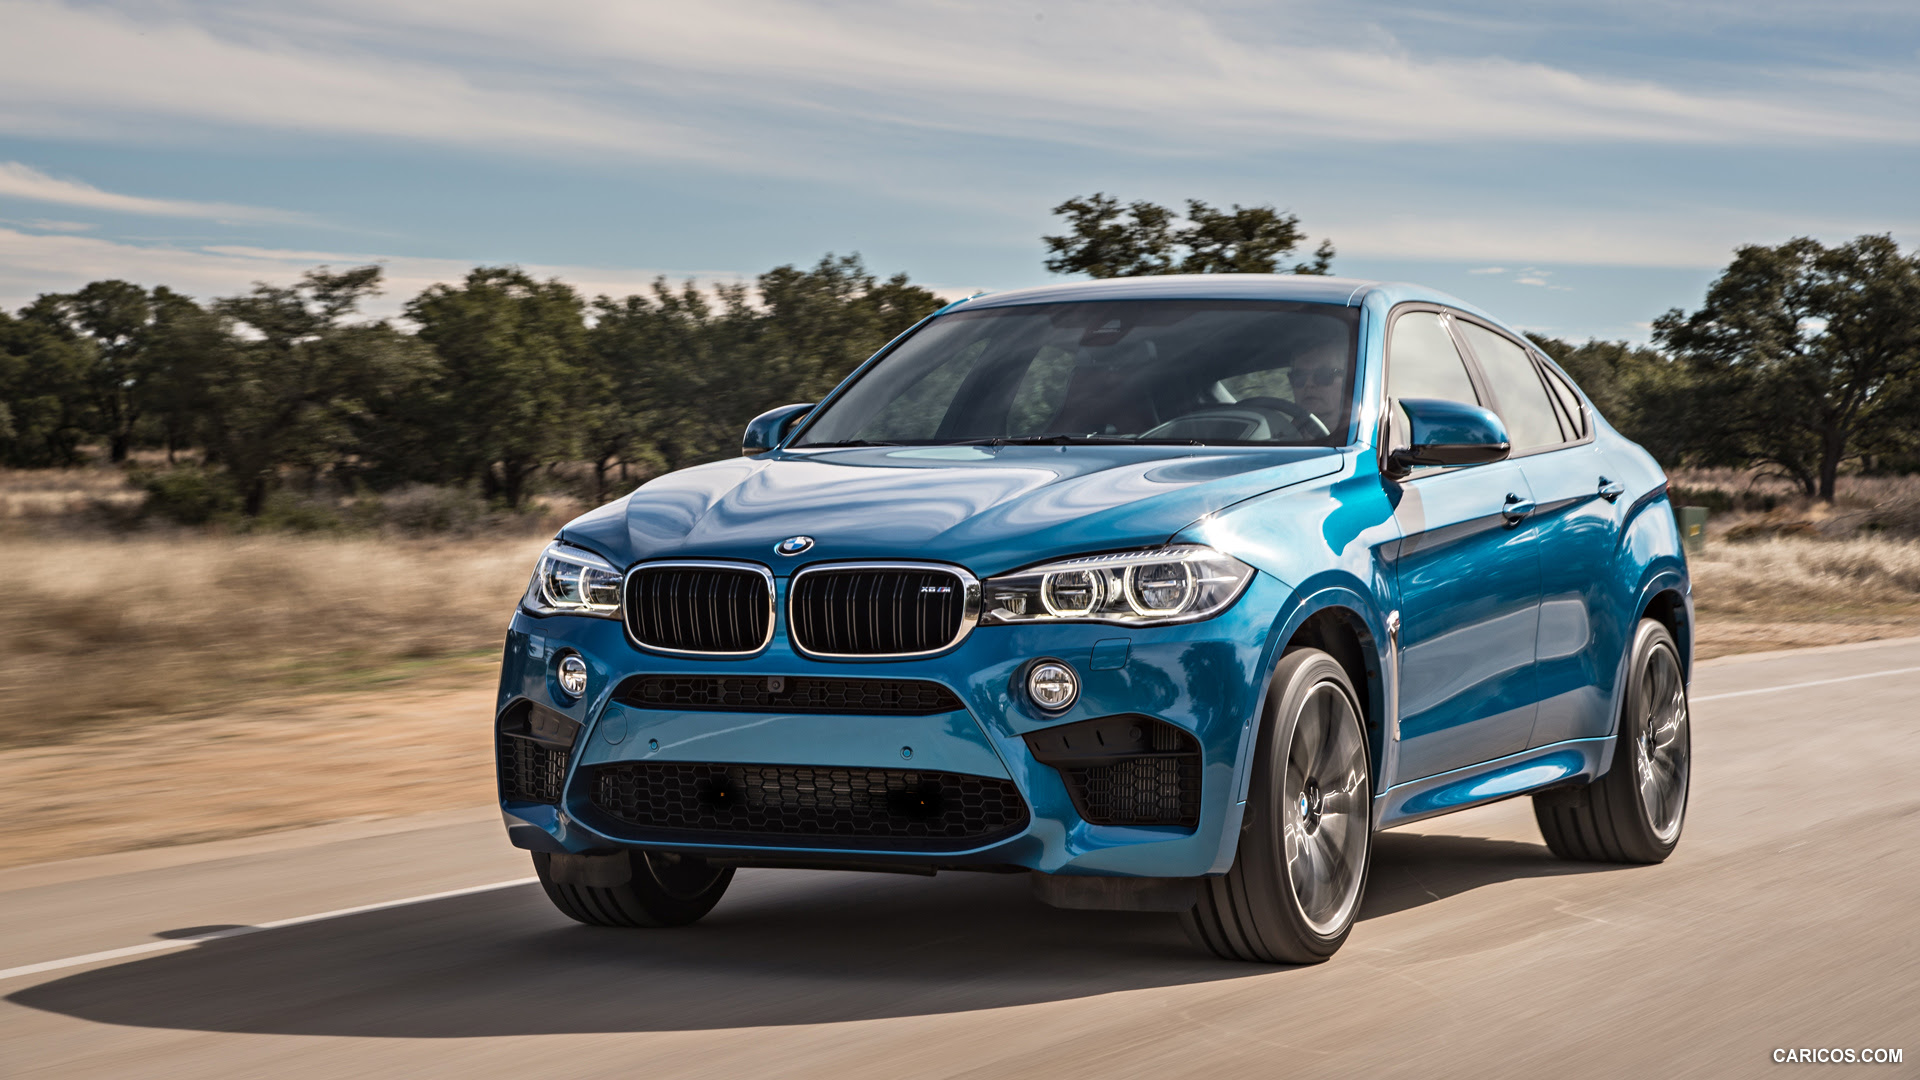 New Bmw X6 2016 HD Wallpapers | AutoCarWall